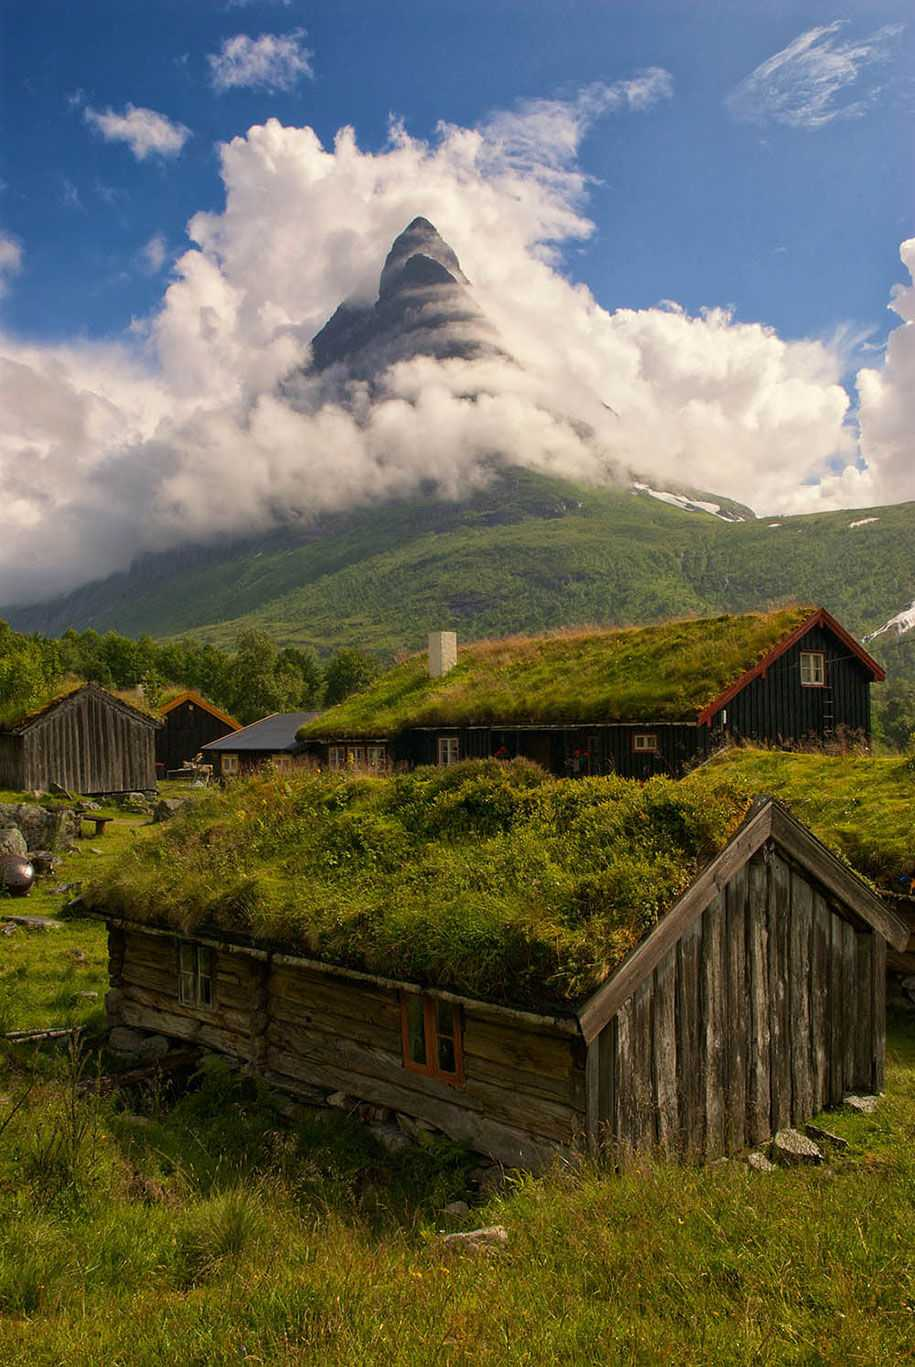 norway-landscape-photography-scandinavian-nature-6_image